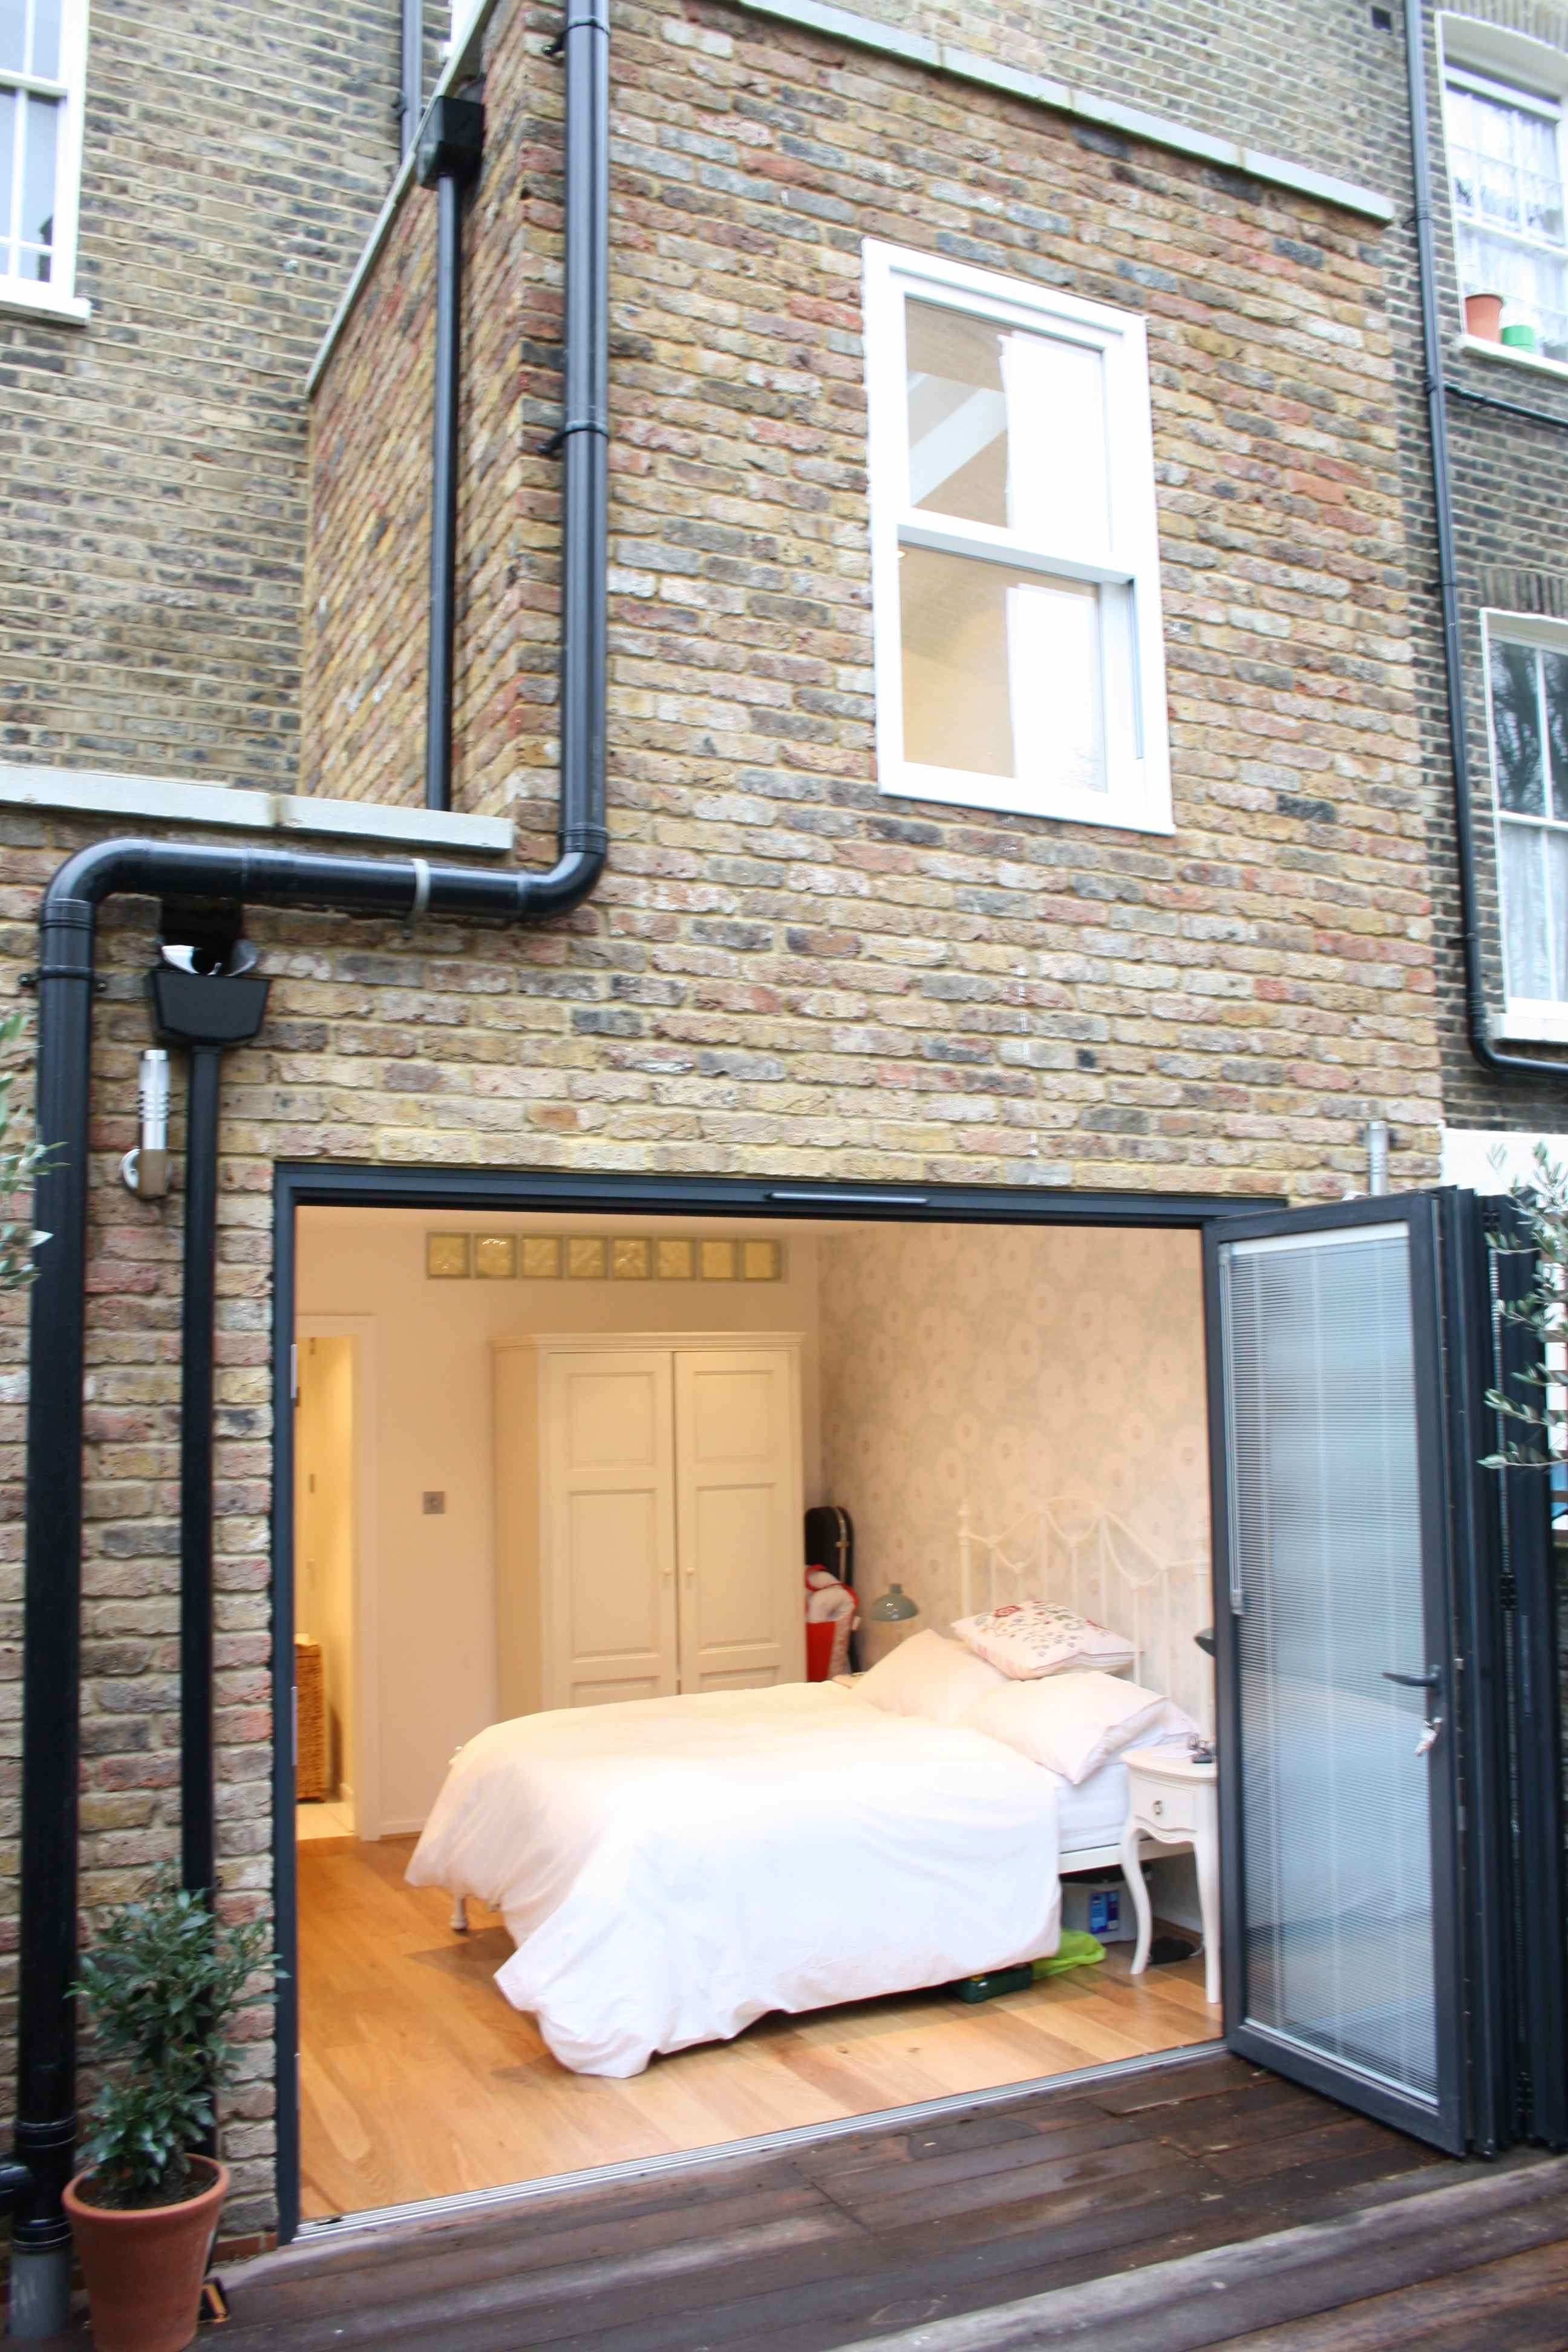 A home extension in London could be used to create a completely new flat.